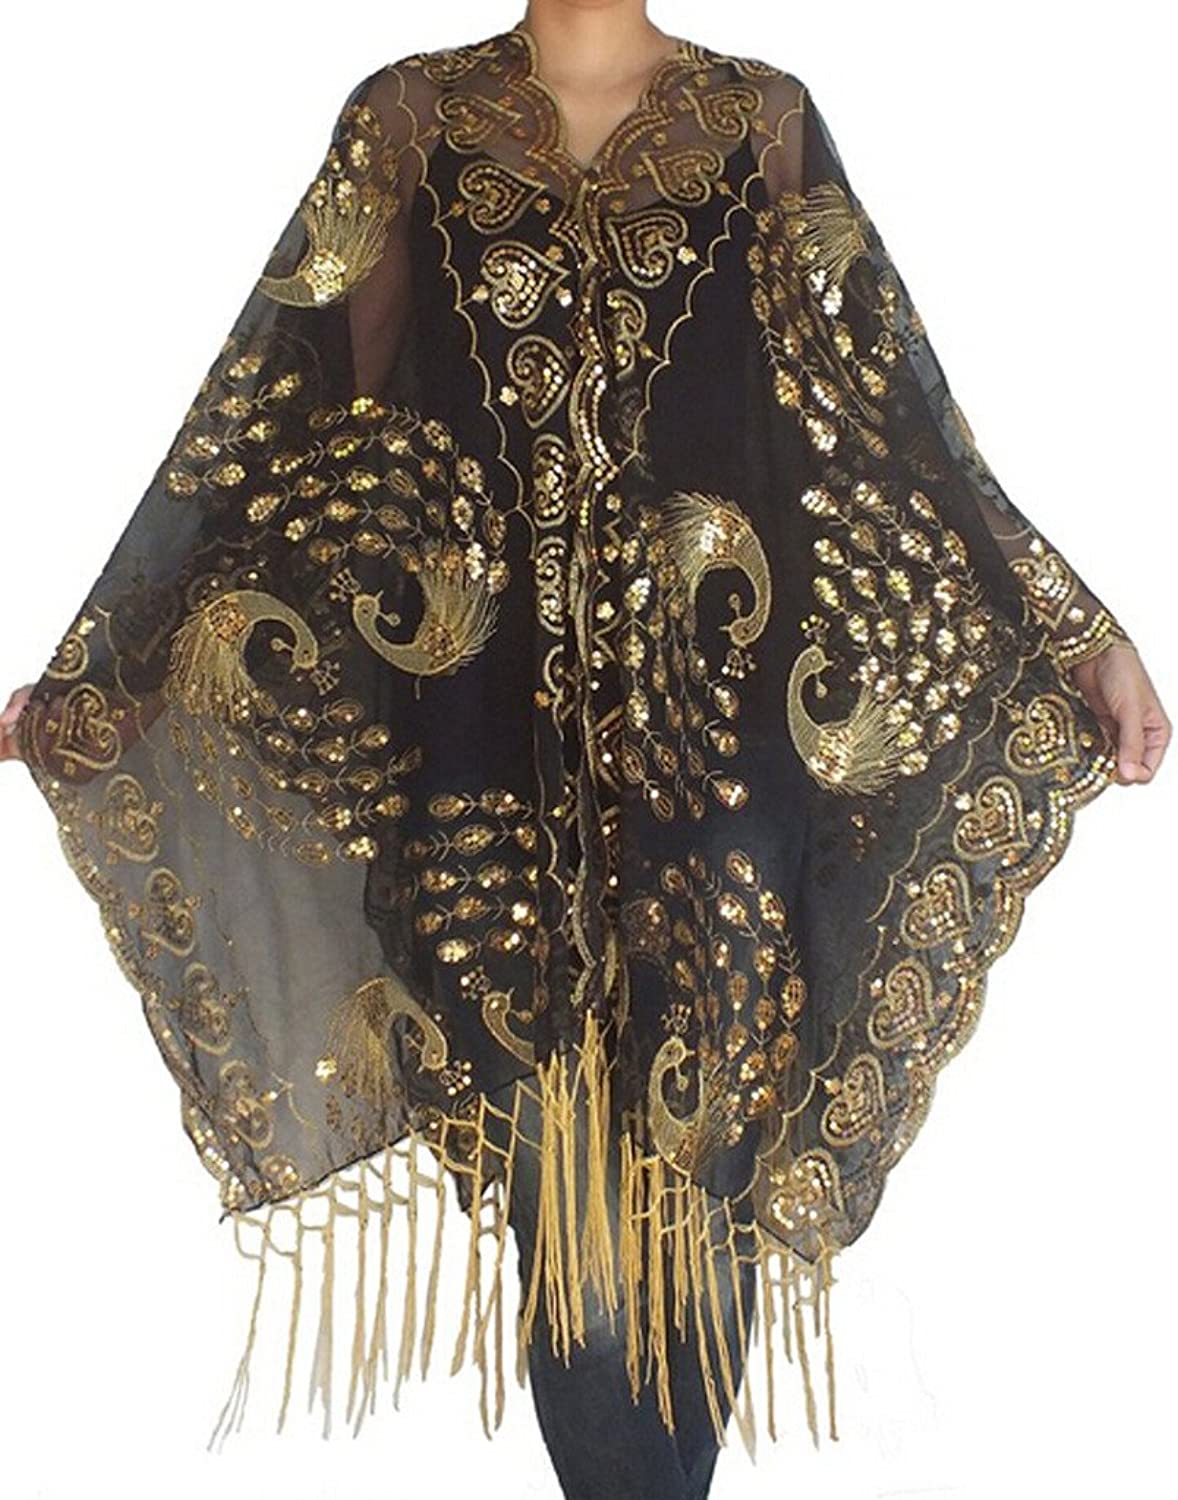 Roaring 20s Costumes- Flapper Costumes, Gangster Costumes  Peacock Phoenix Embroidery Sequins Wedding Scarf Shawls $19.99 AT vintagedancer.com